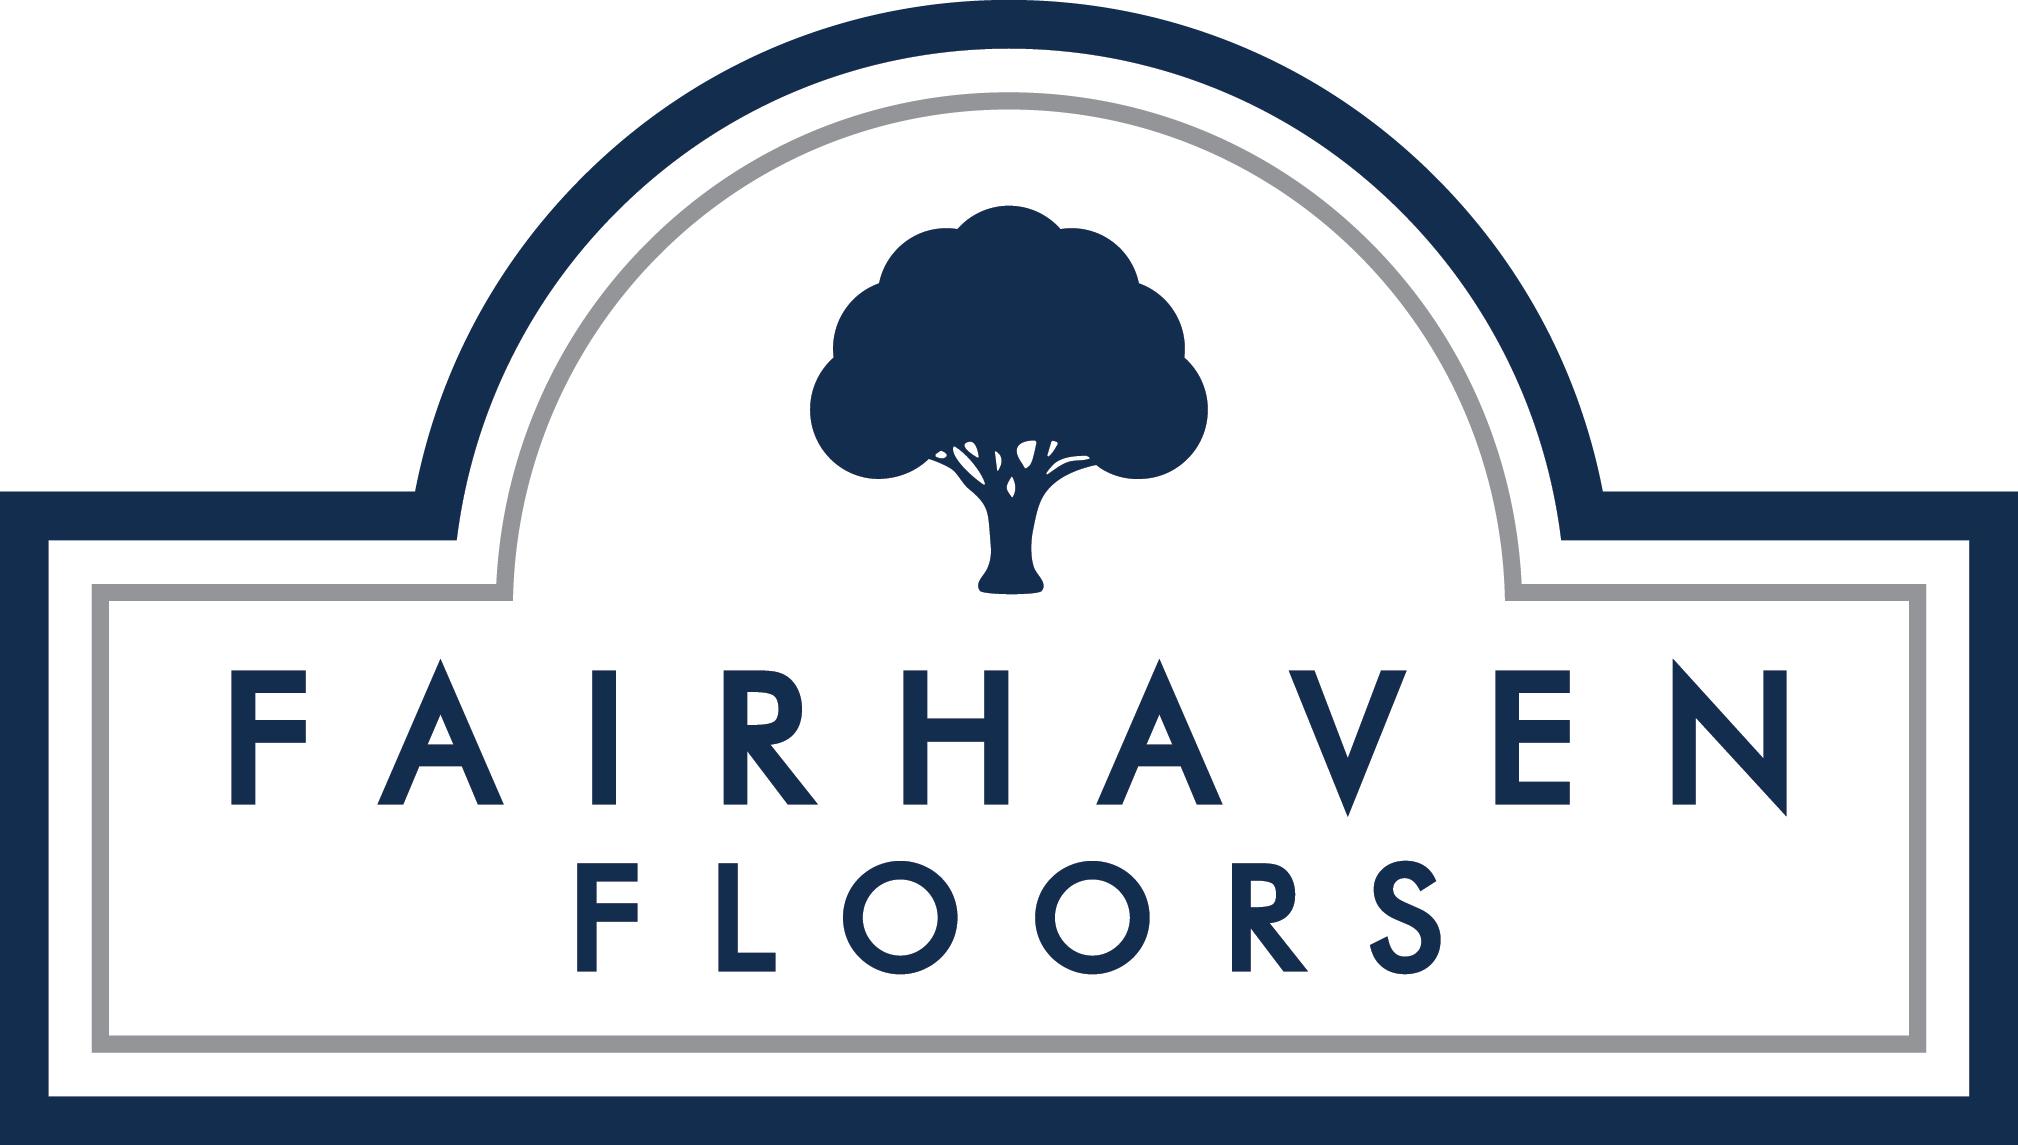 Fairhaven Floors